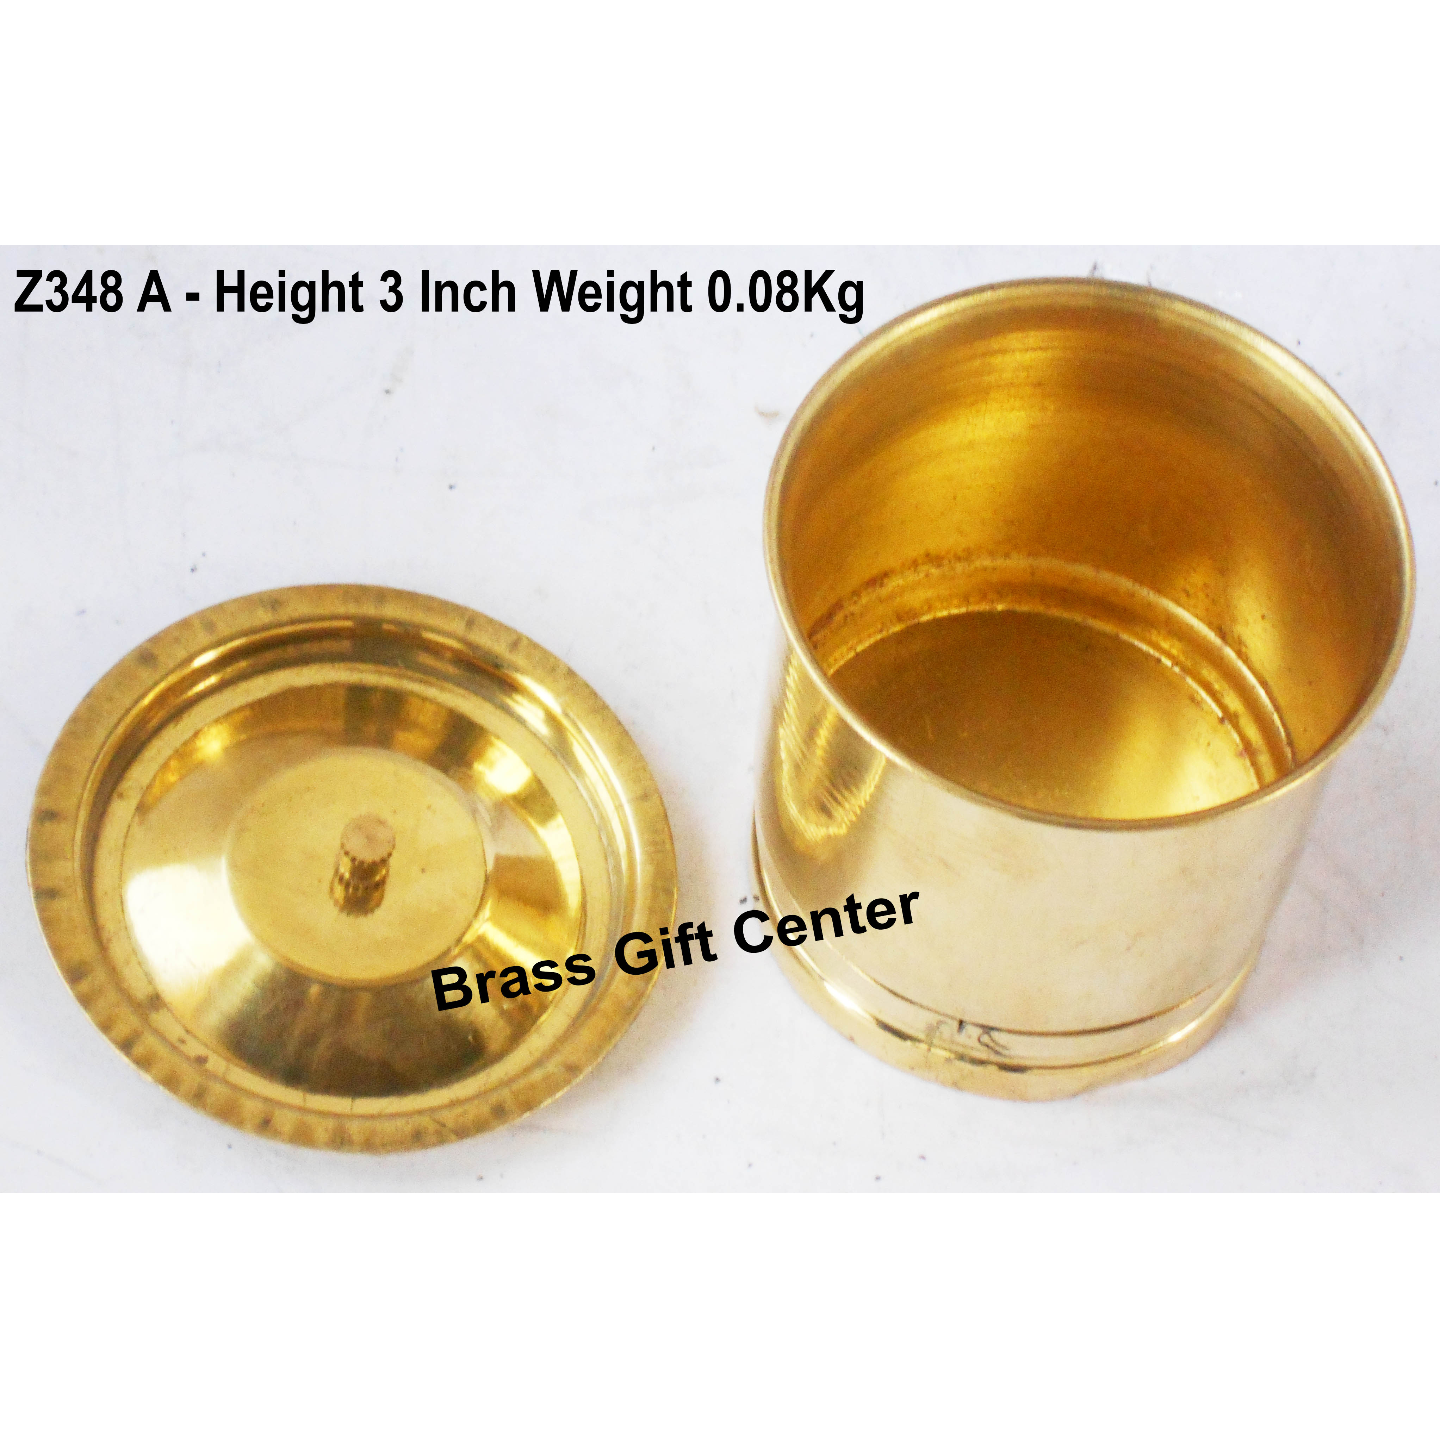 Brass Ration Drum Miniature Toy For Children Playing- 2.22.23 Inch Z348 A